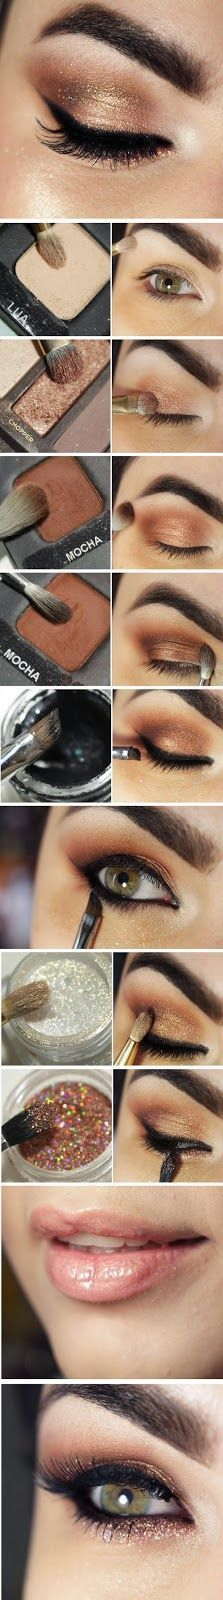 Stunning rose gold smokey eye makeup with shimmer tutorial